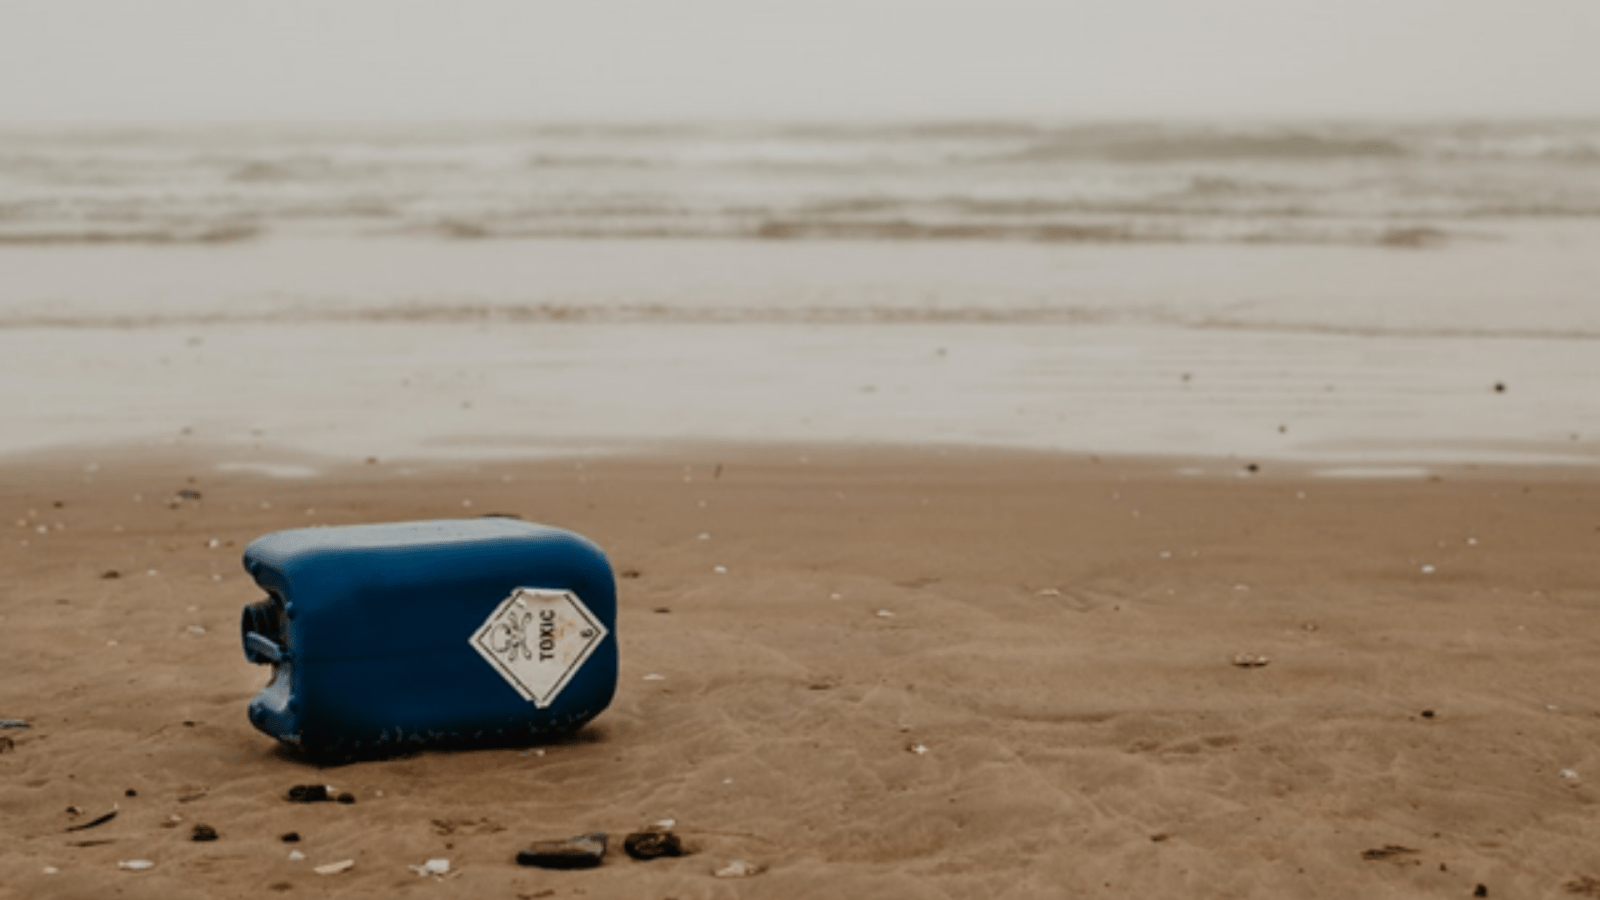 plastic container on beach